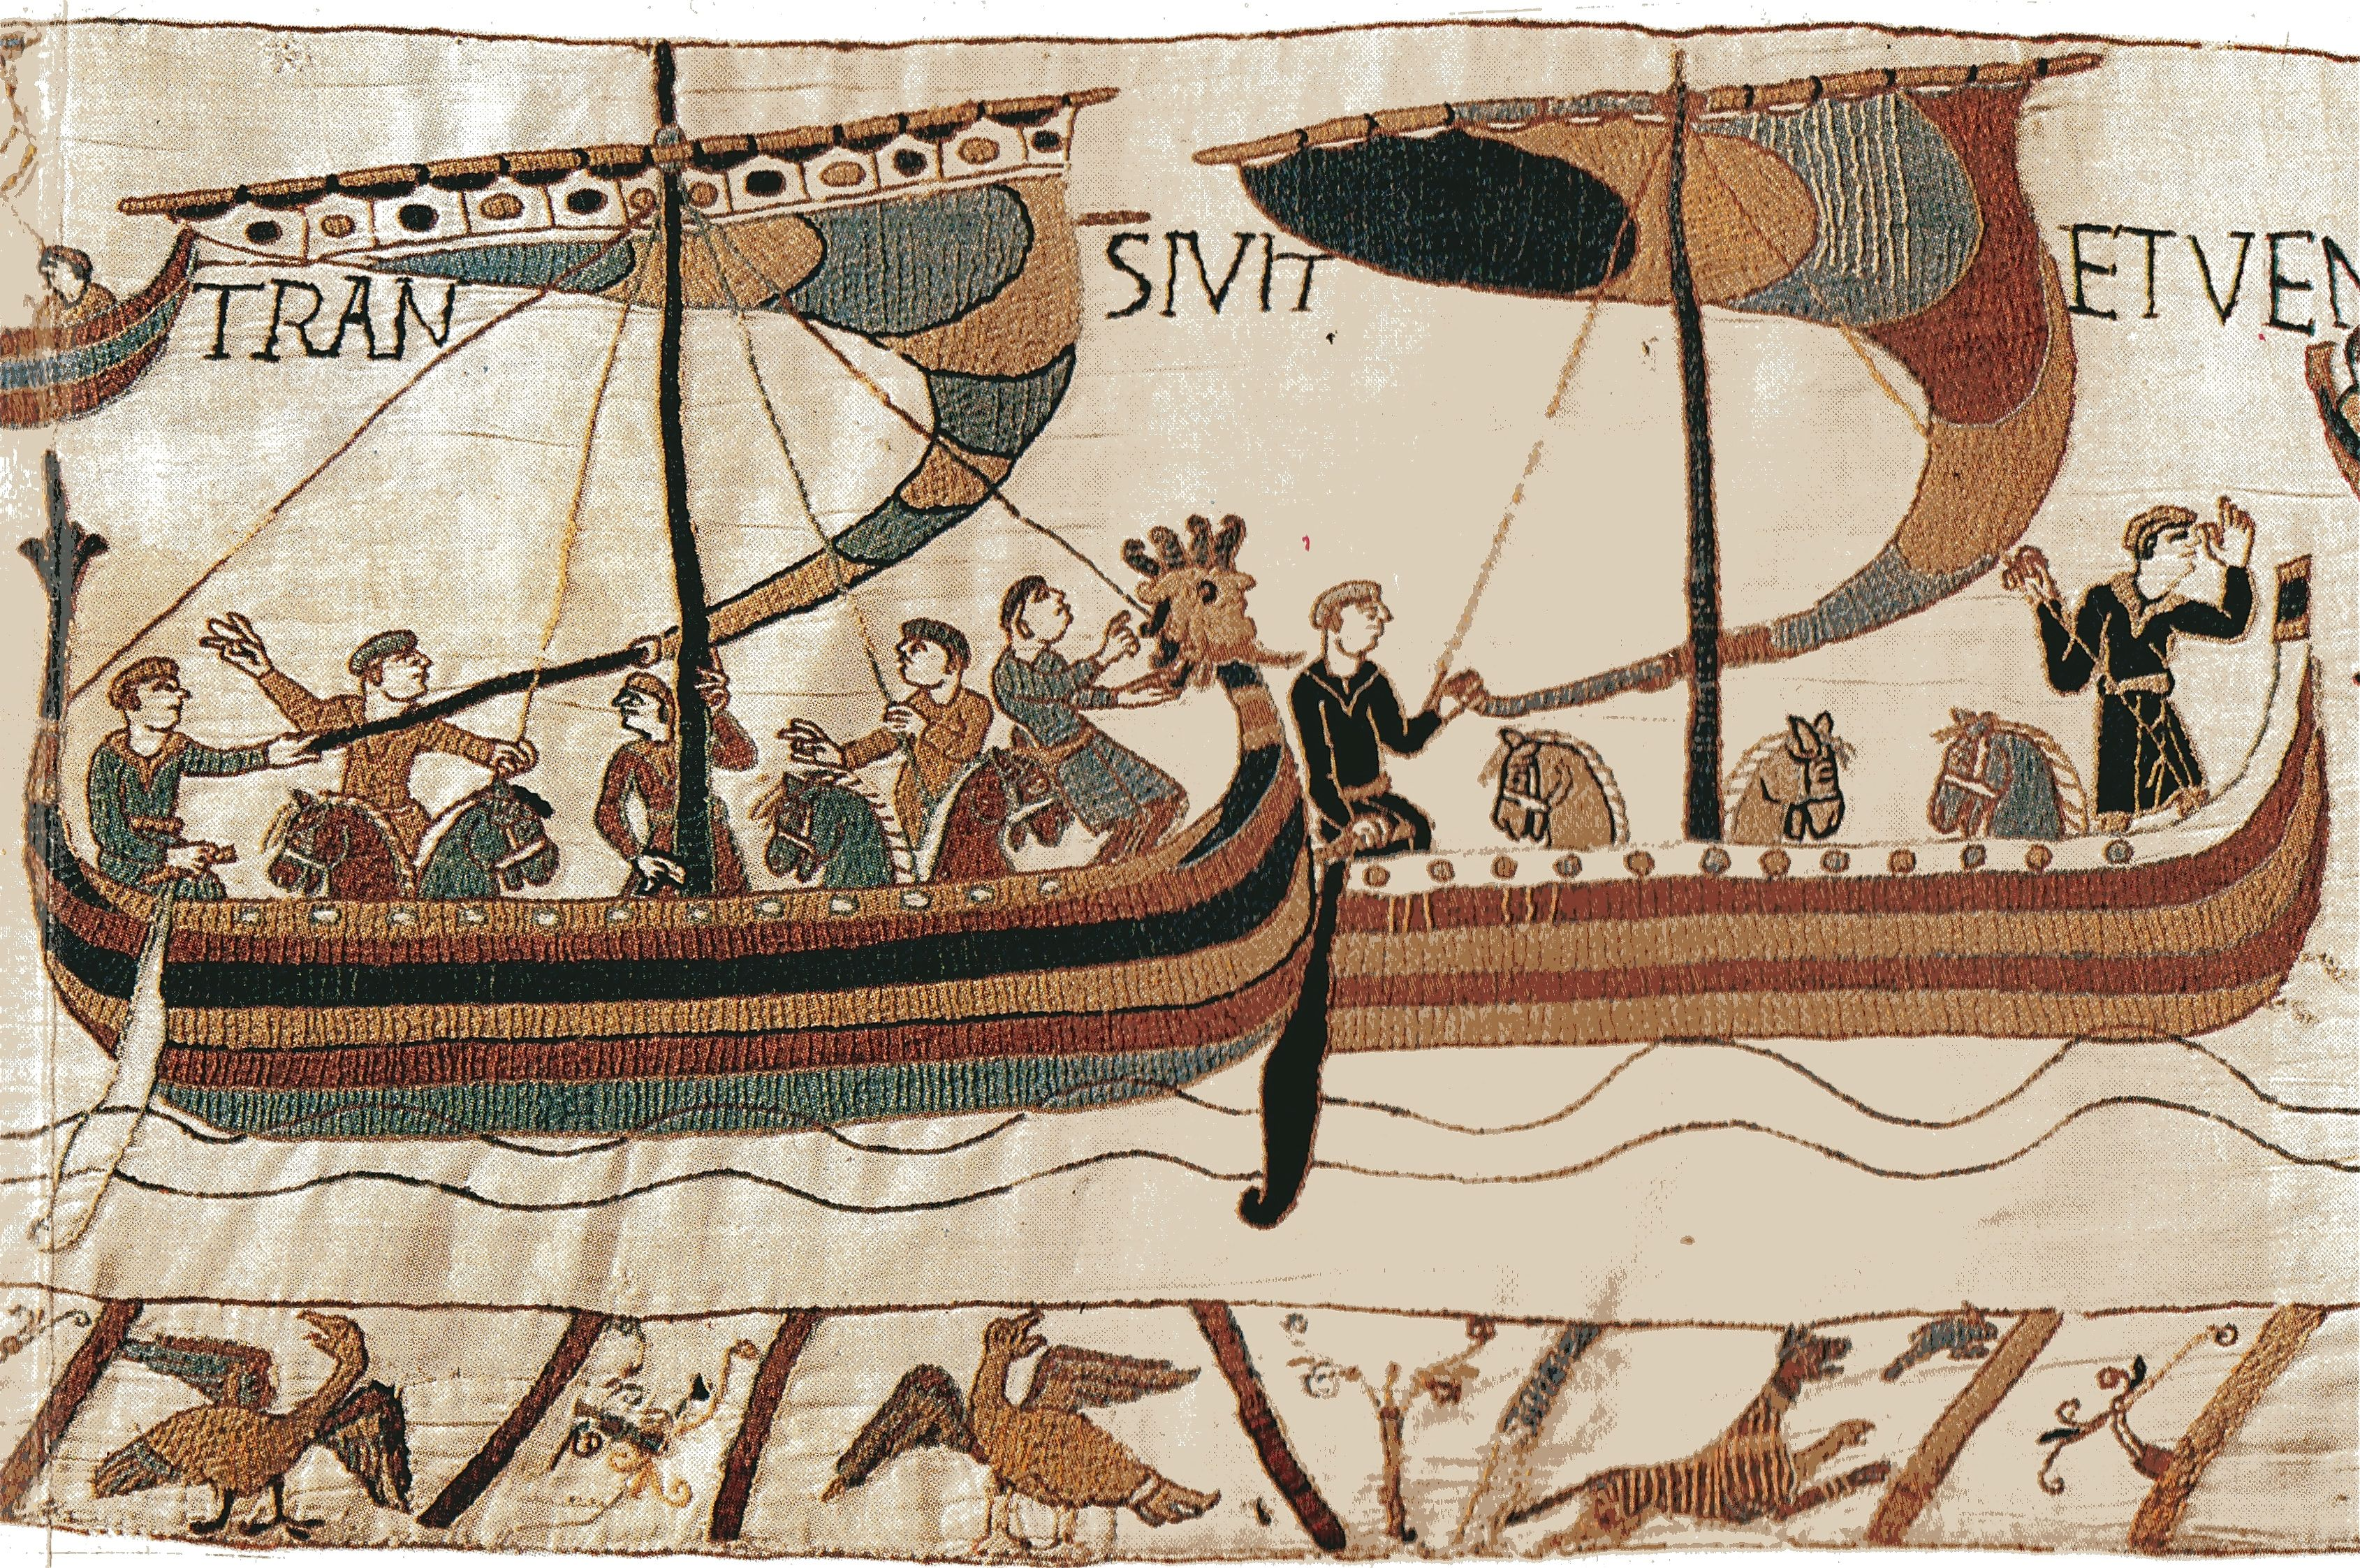 http://upload.wikimedia.org/wikipedia/commons/f/f5/Bayeux_horses_boats.jpg